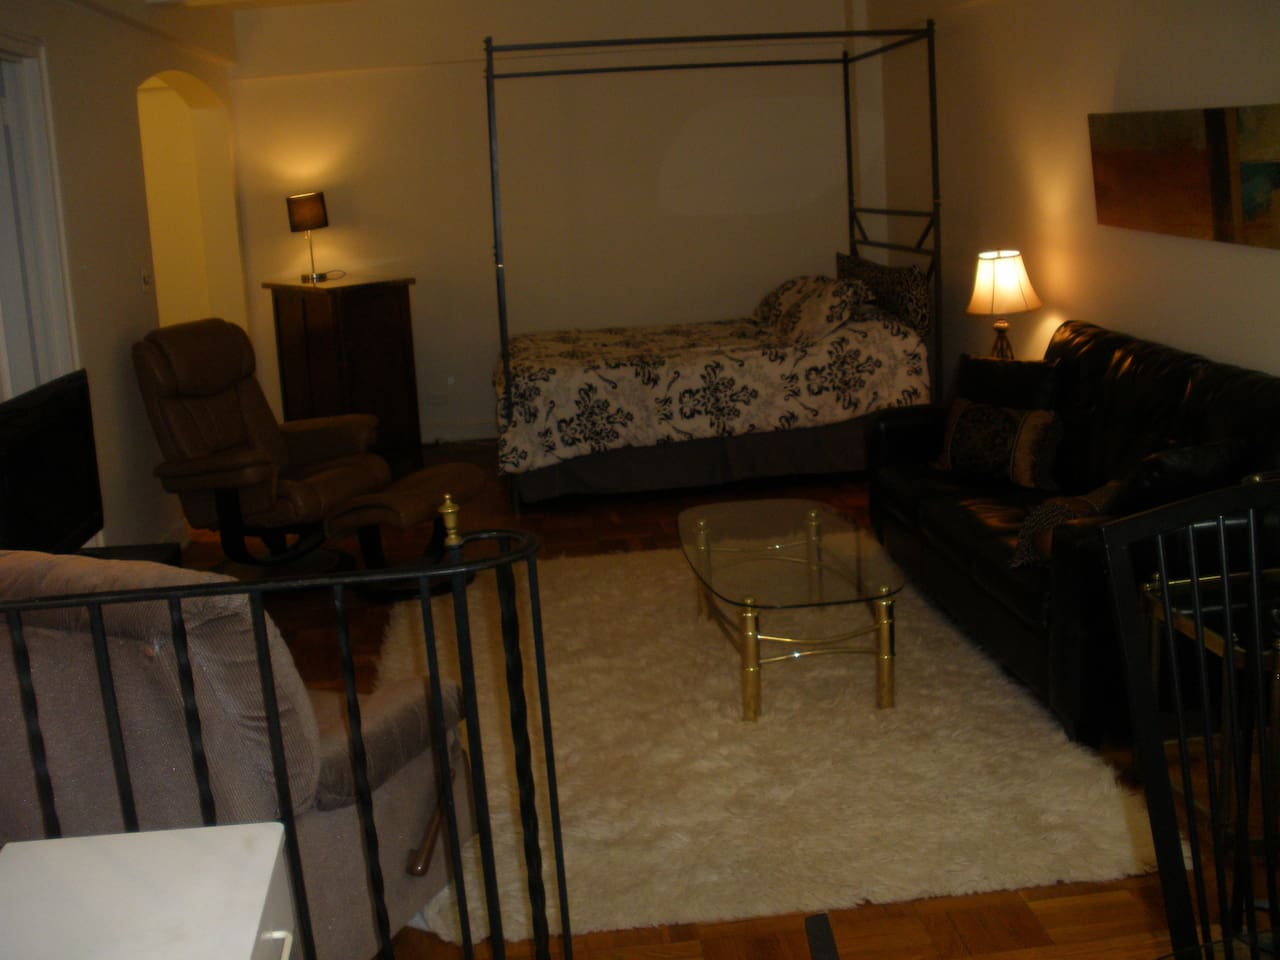 Queen size bed plus full-size sofa bed.  Luxury 24 hour doorman bldg  easy walking distance to Grand Central, Rockefeller Center, uptown, downtown and crosstown bus service.  Three blocks from subway.